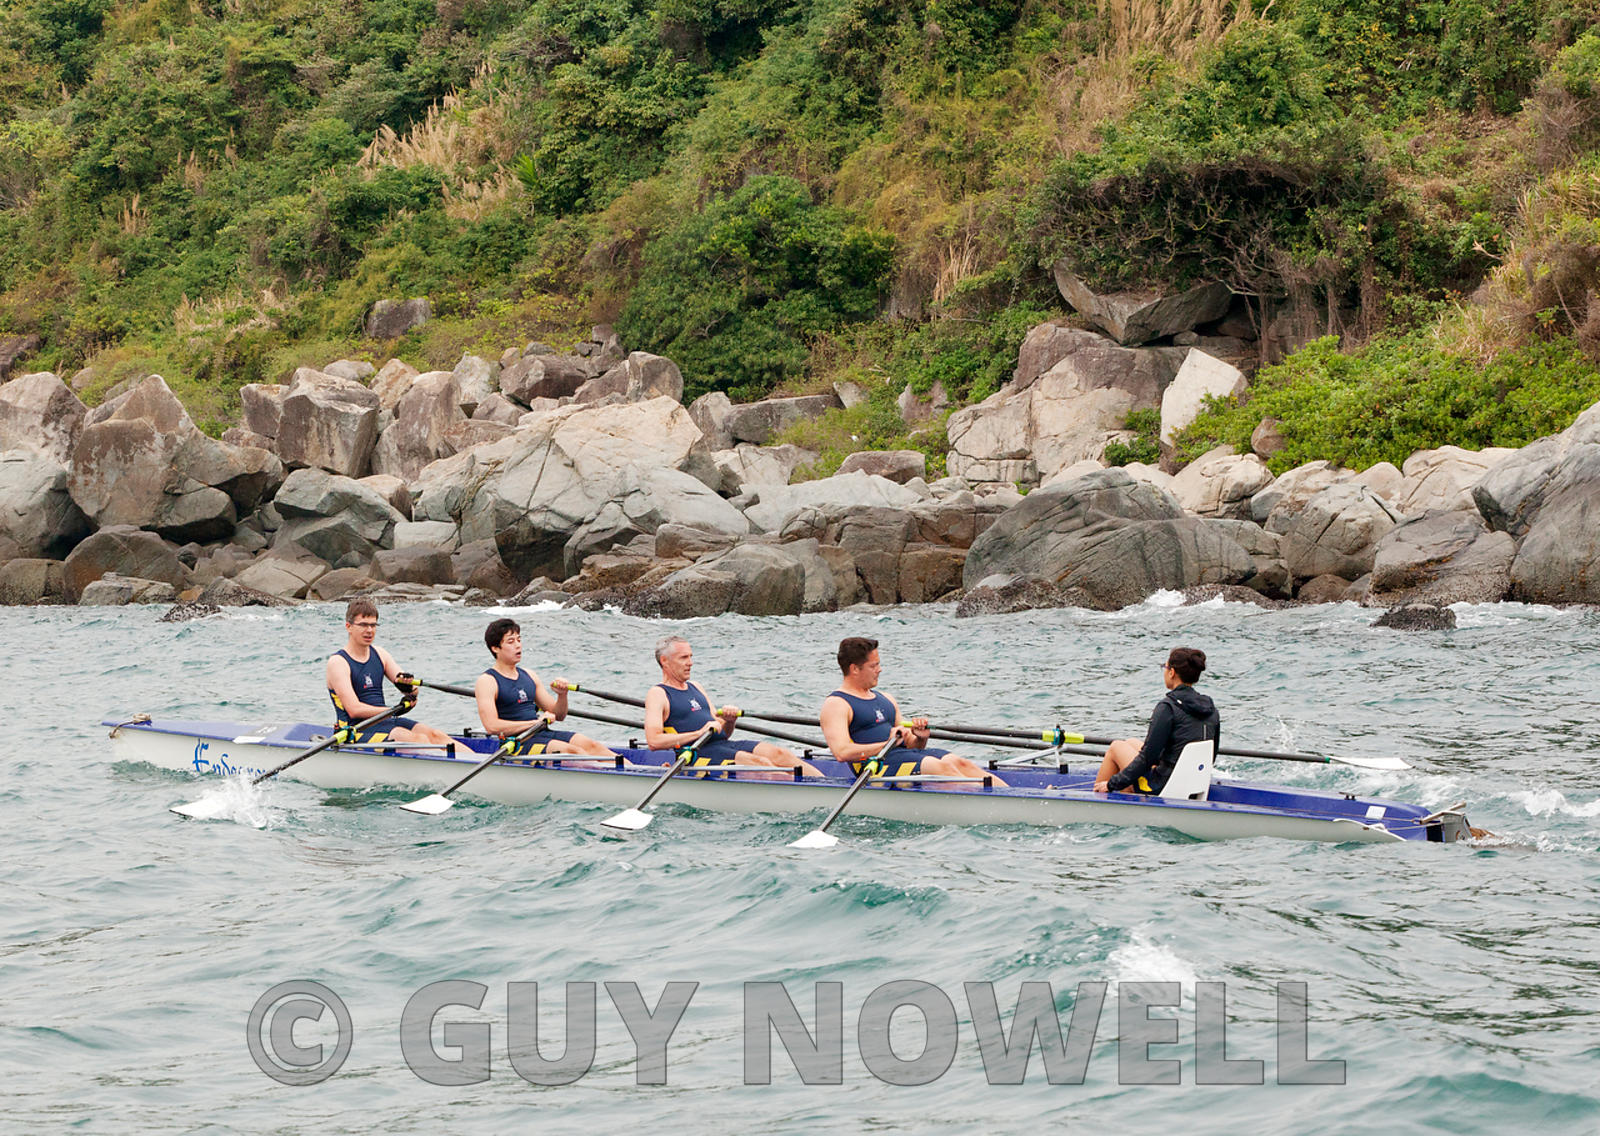 Hong Kong Coastal Rowing Championships 2015